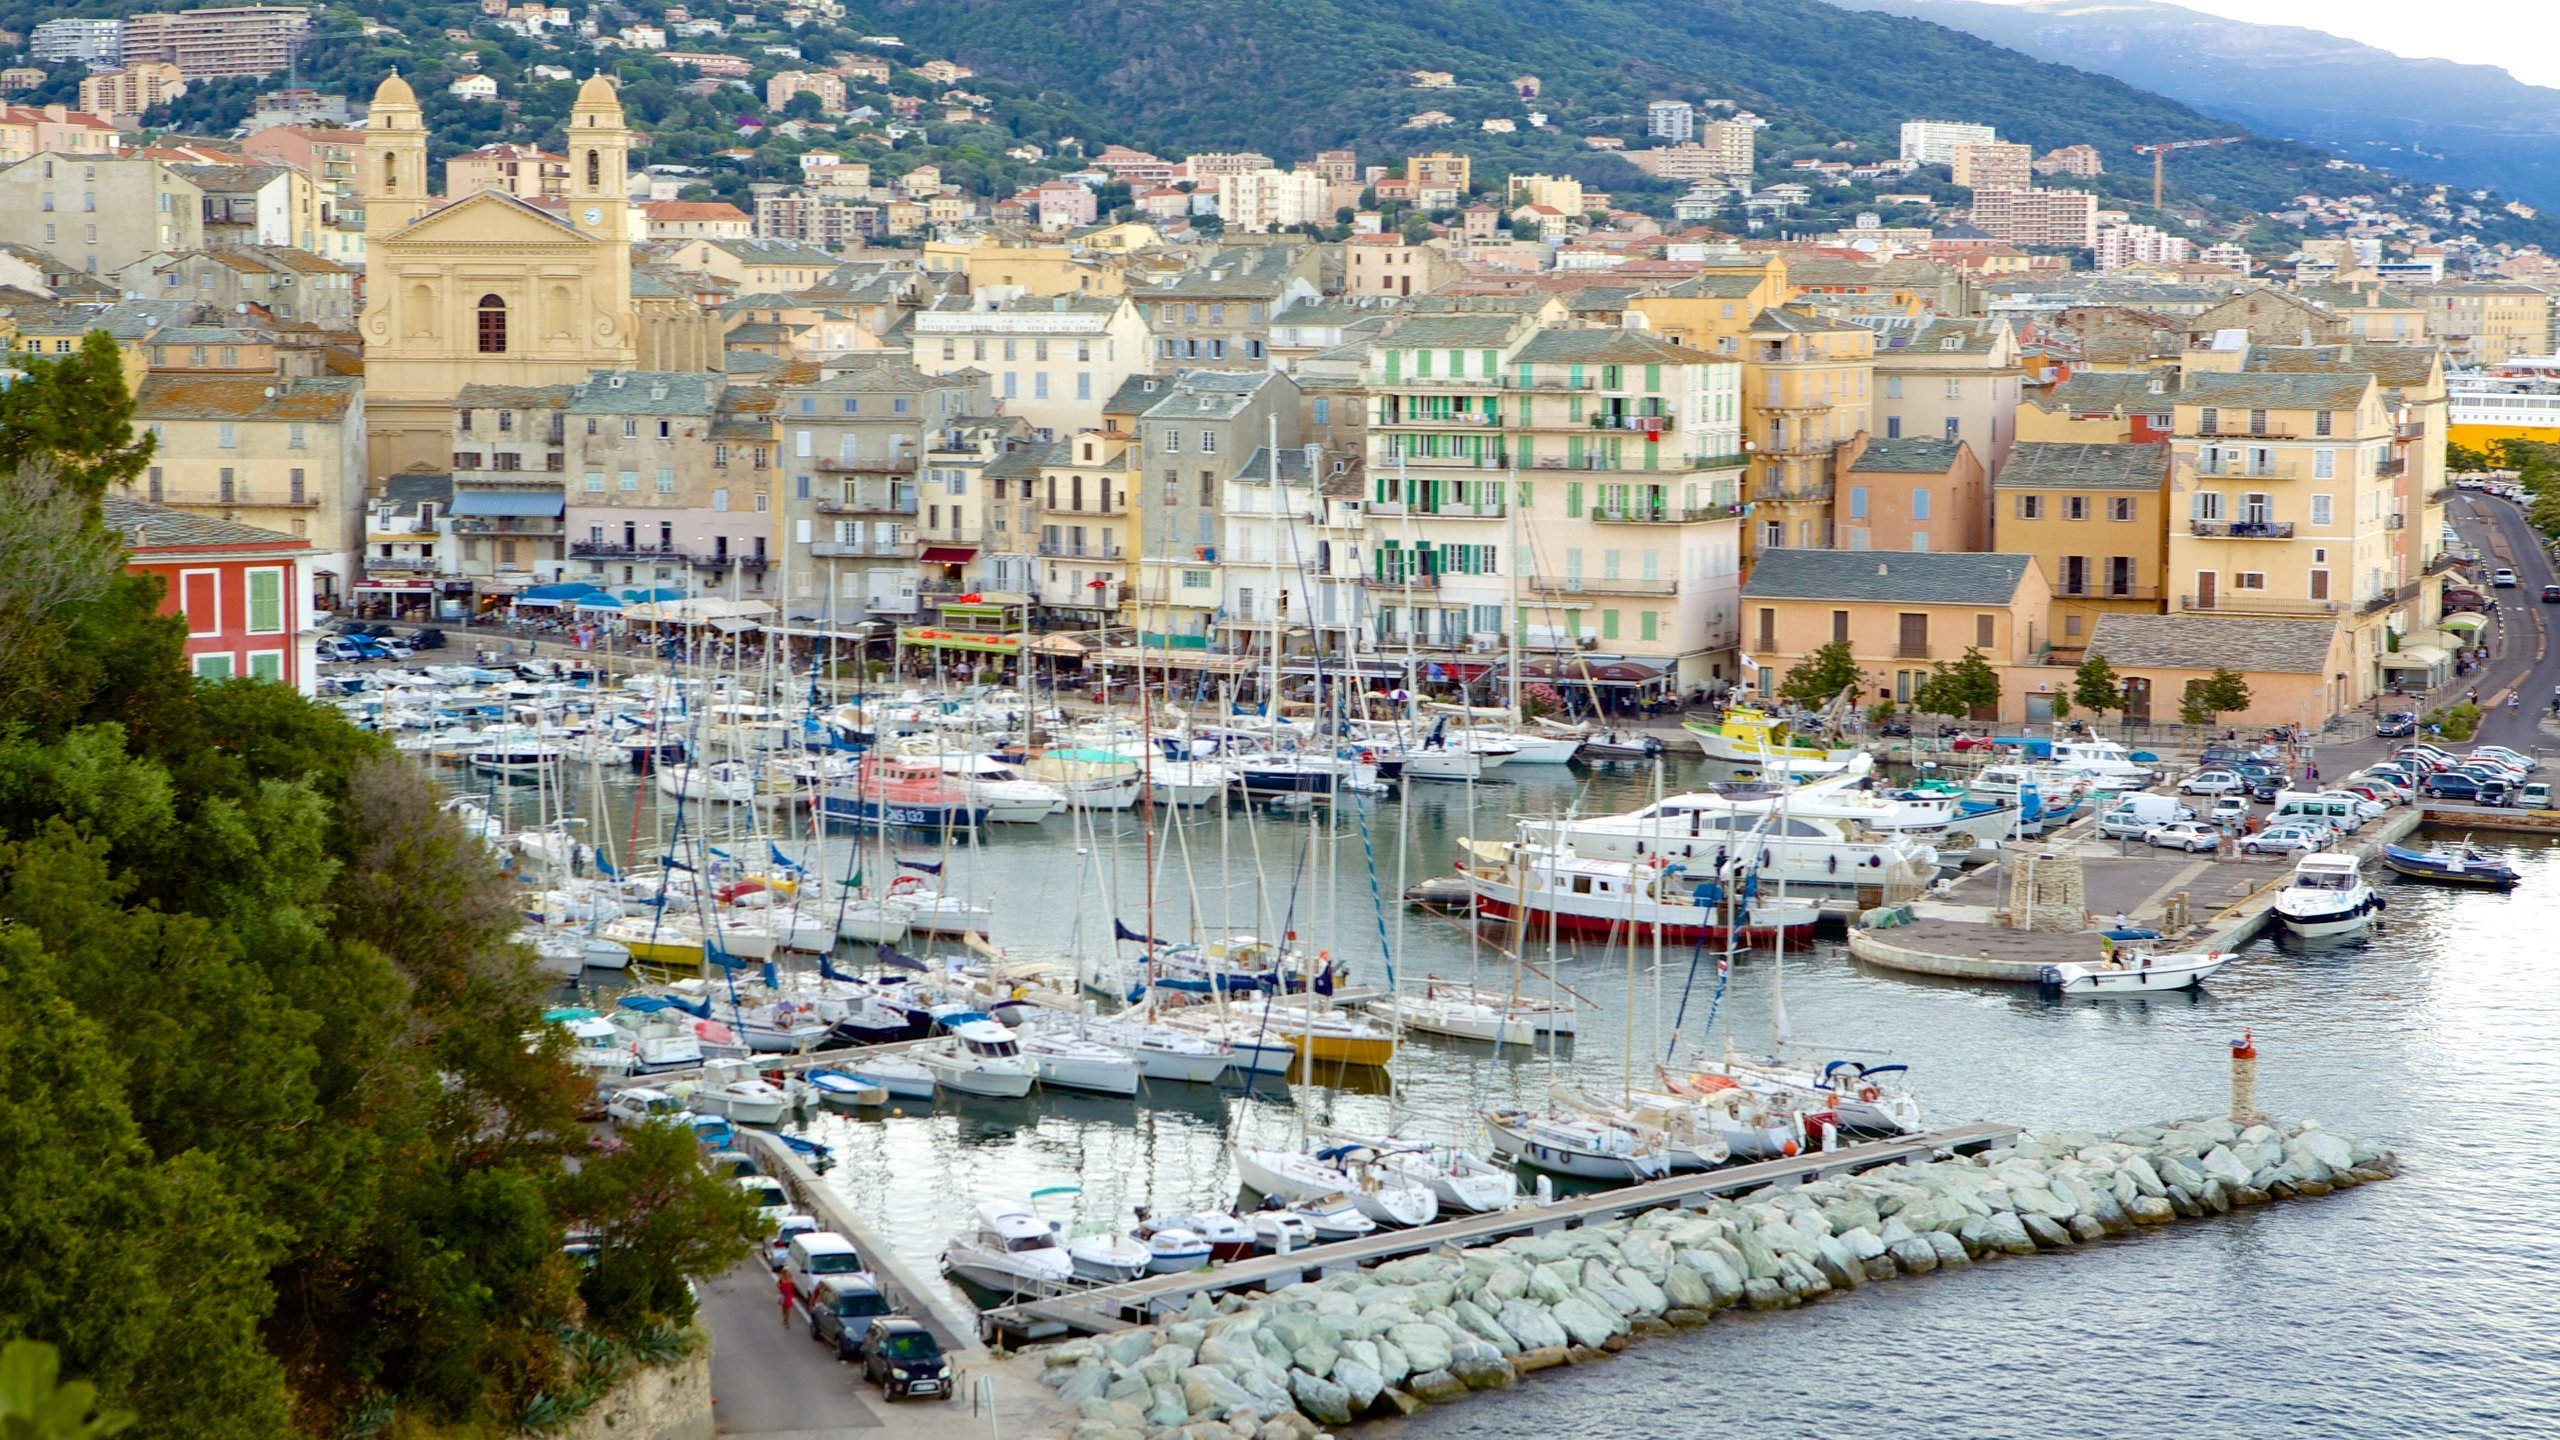 Hotel Port Bastia The 10 Best Hotels In Bastia Corsica 81 For 2019 Expedia